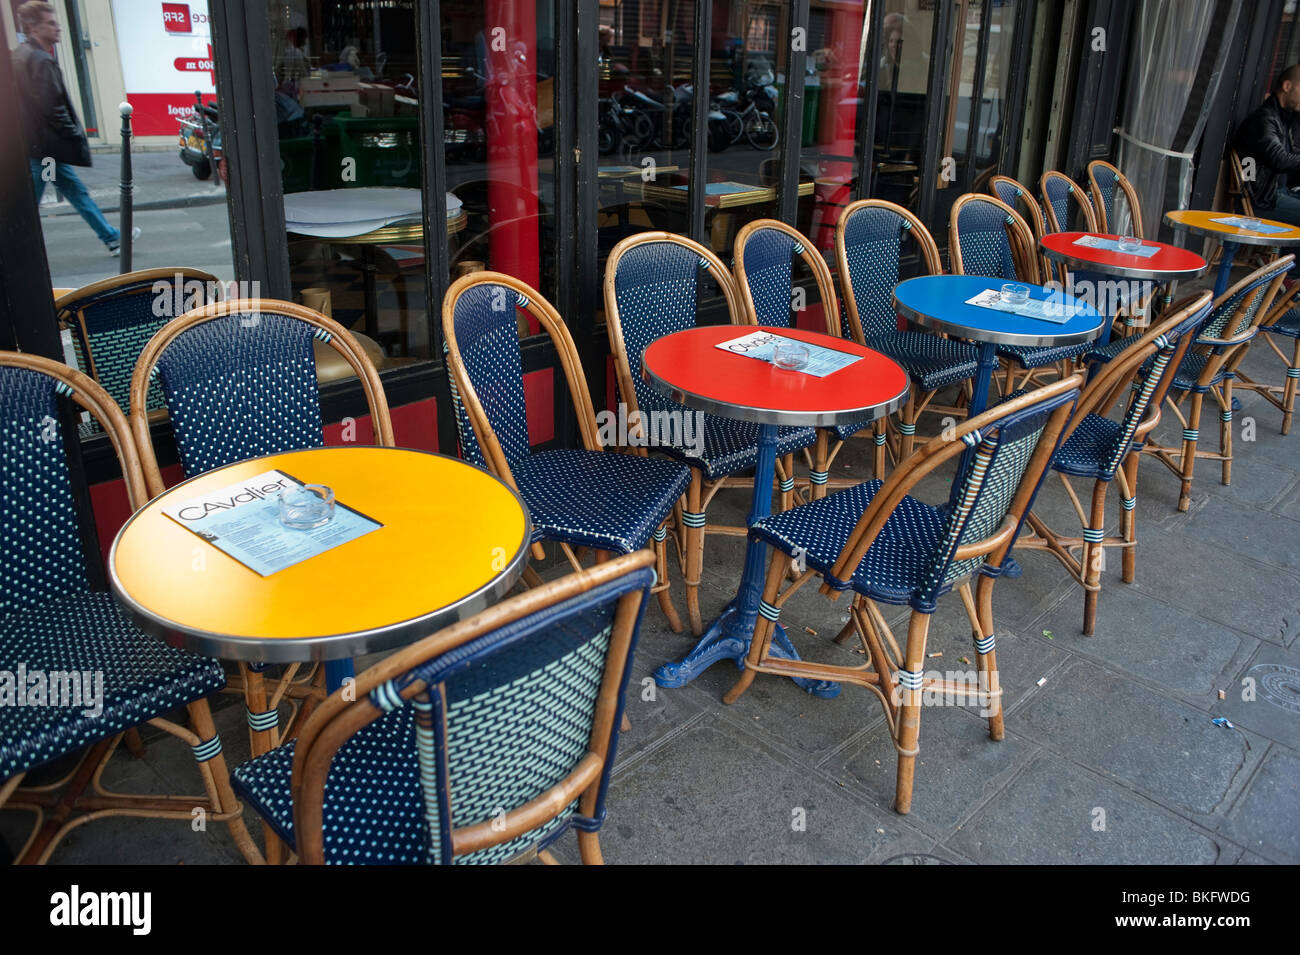 parisian cafe chairs desk chair for sale bistro stock photos paris france empty tables terrace on sidewalk street